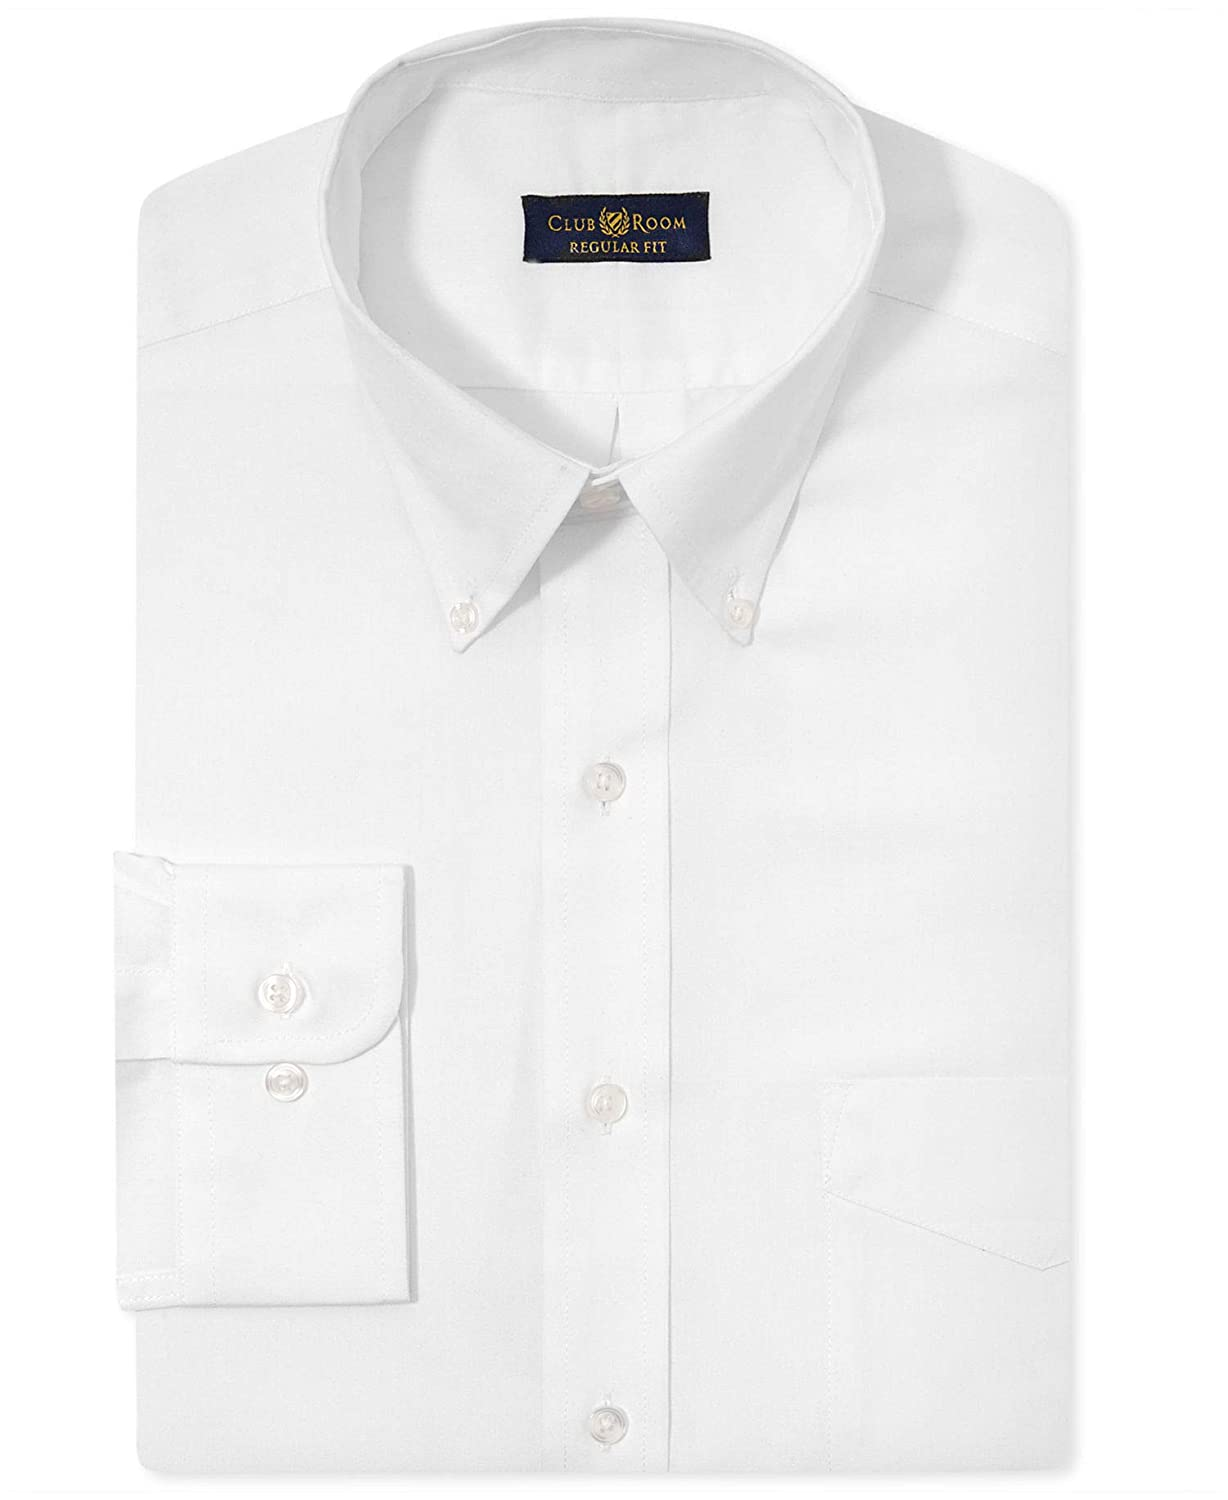 Club Room Mens Classic-Fit Wrinkle Resistant White Dress Shirt